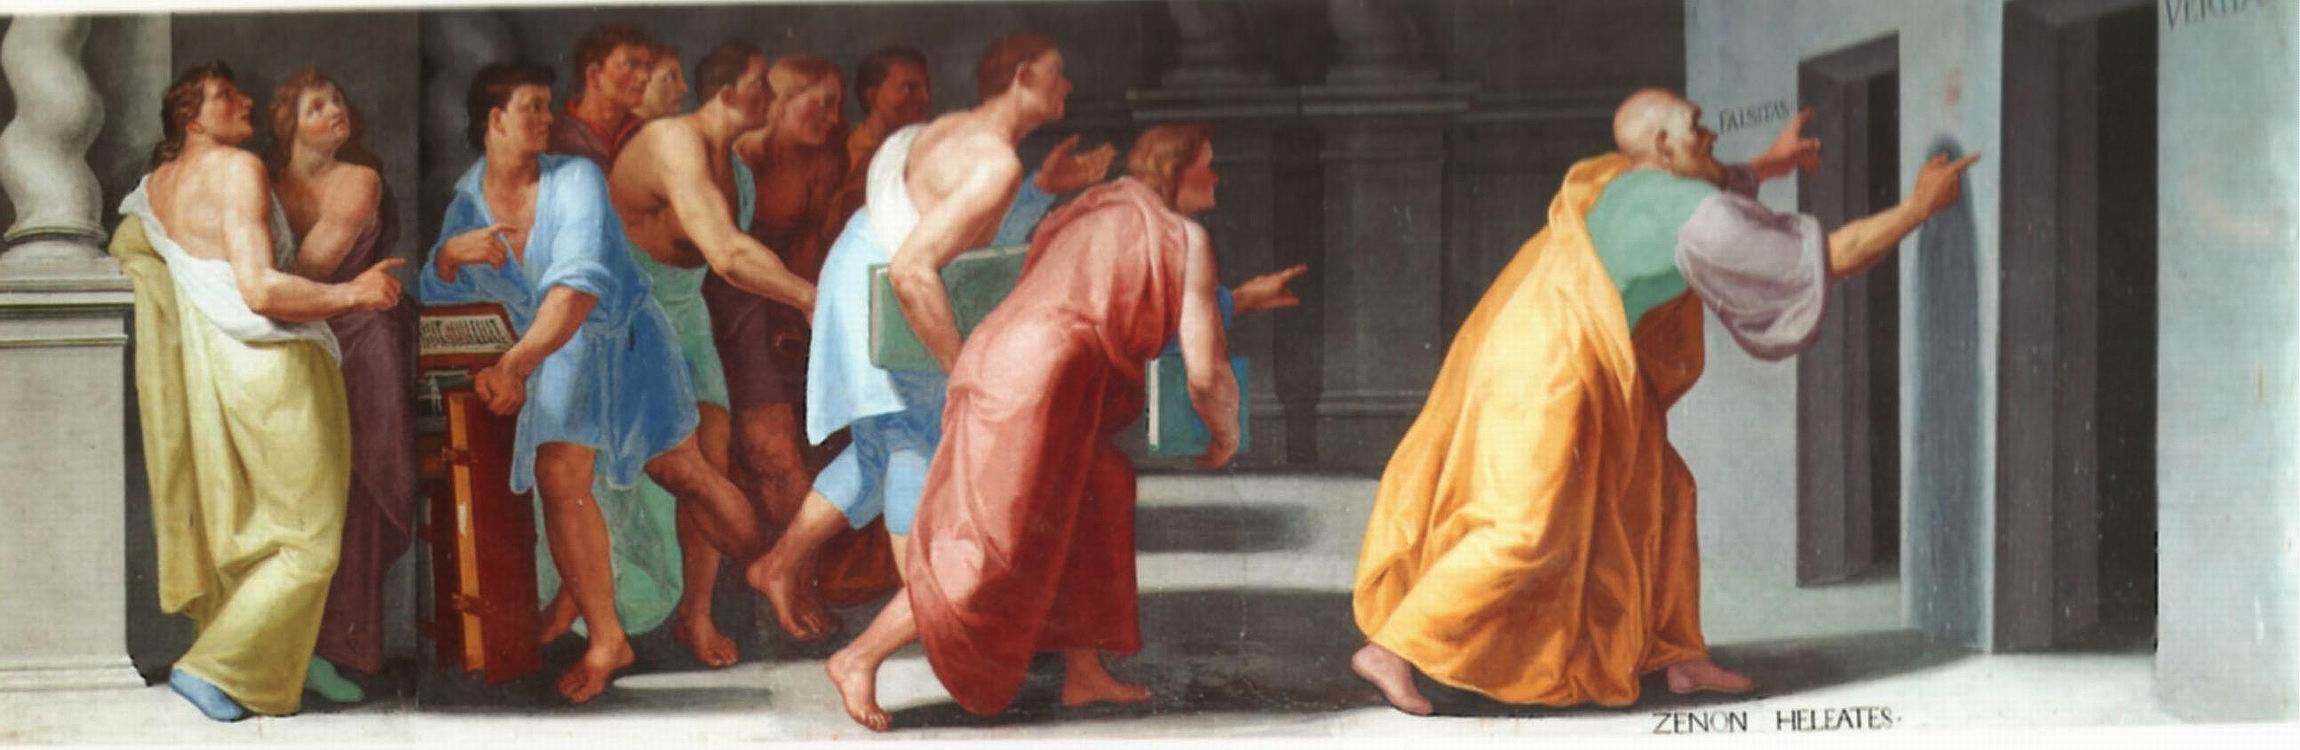 The Stoic Zeno shows the Doors to Truth and False